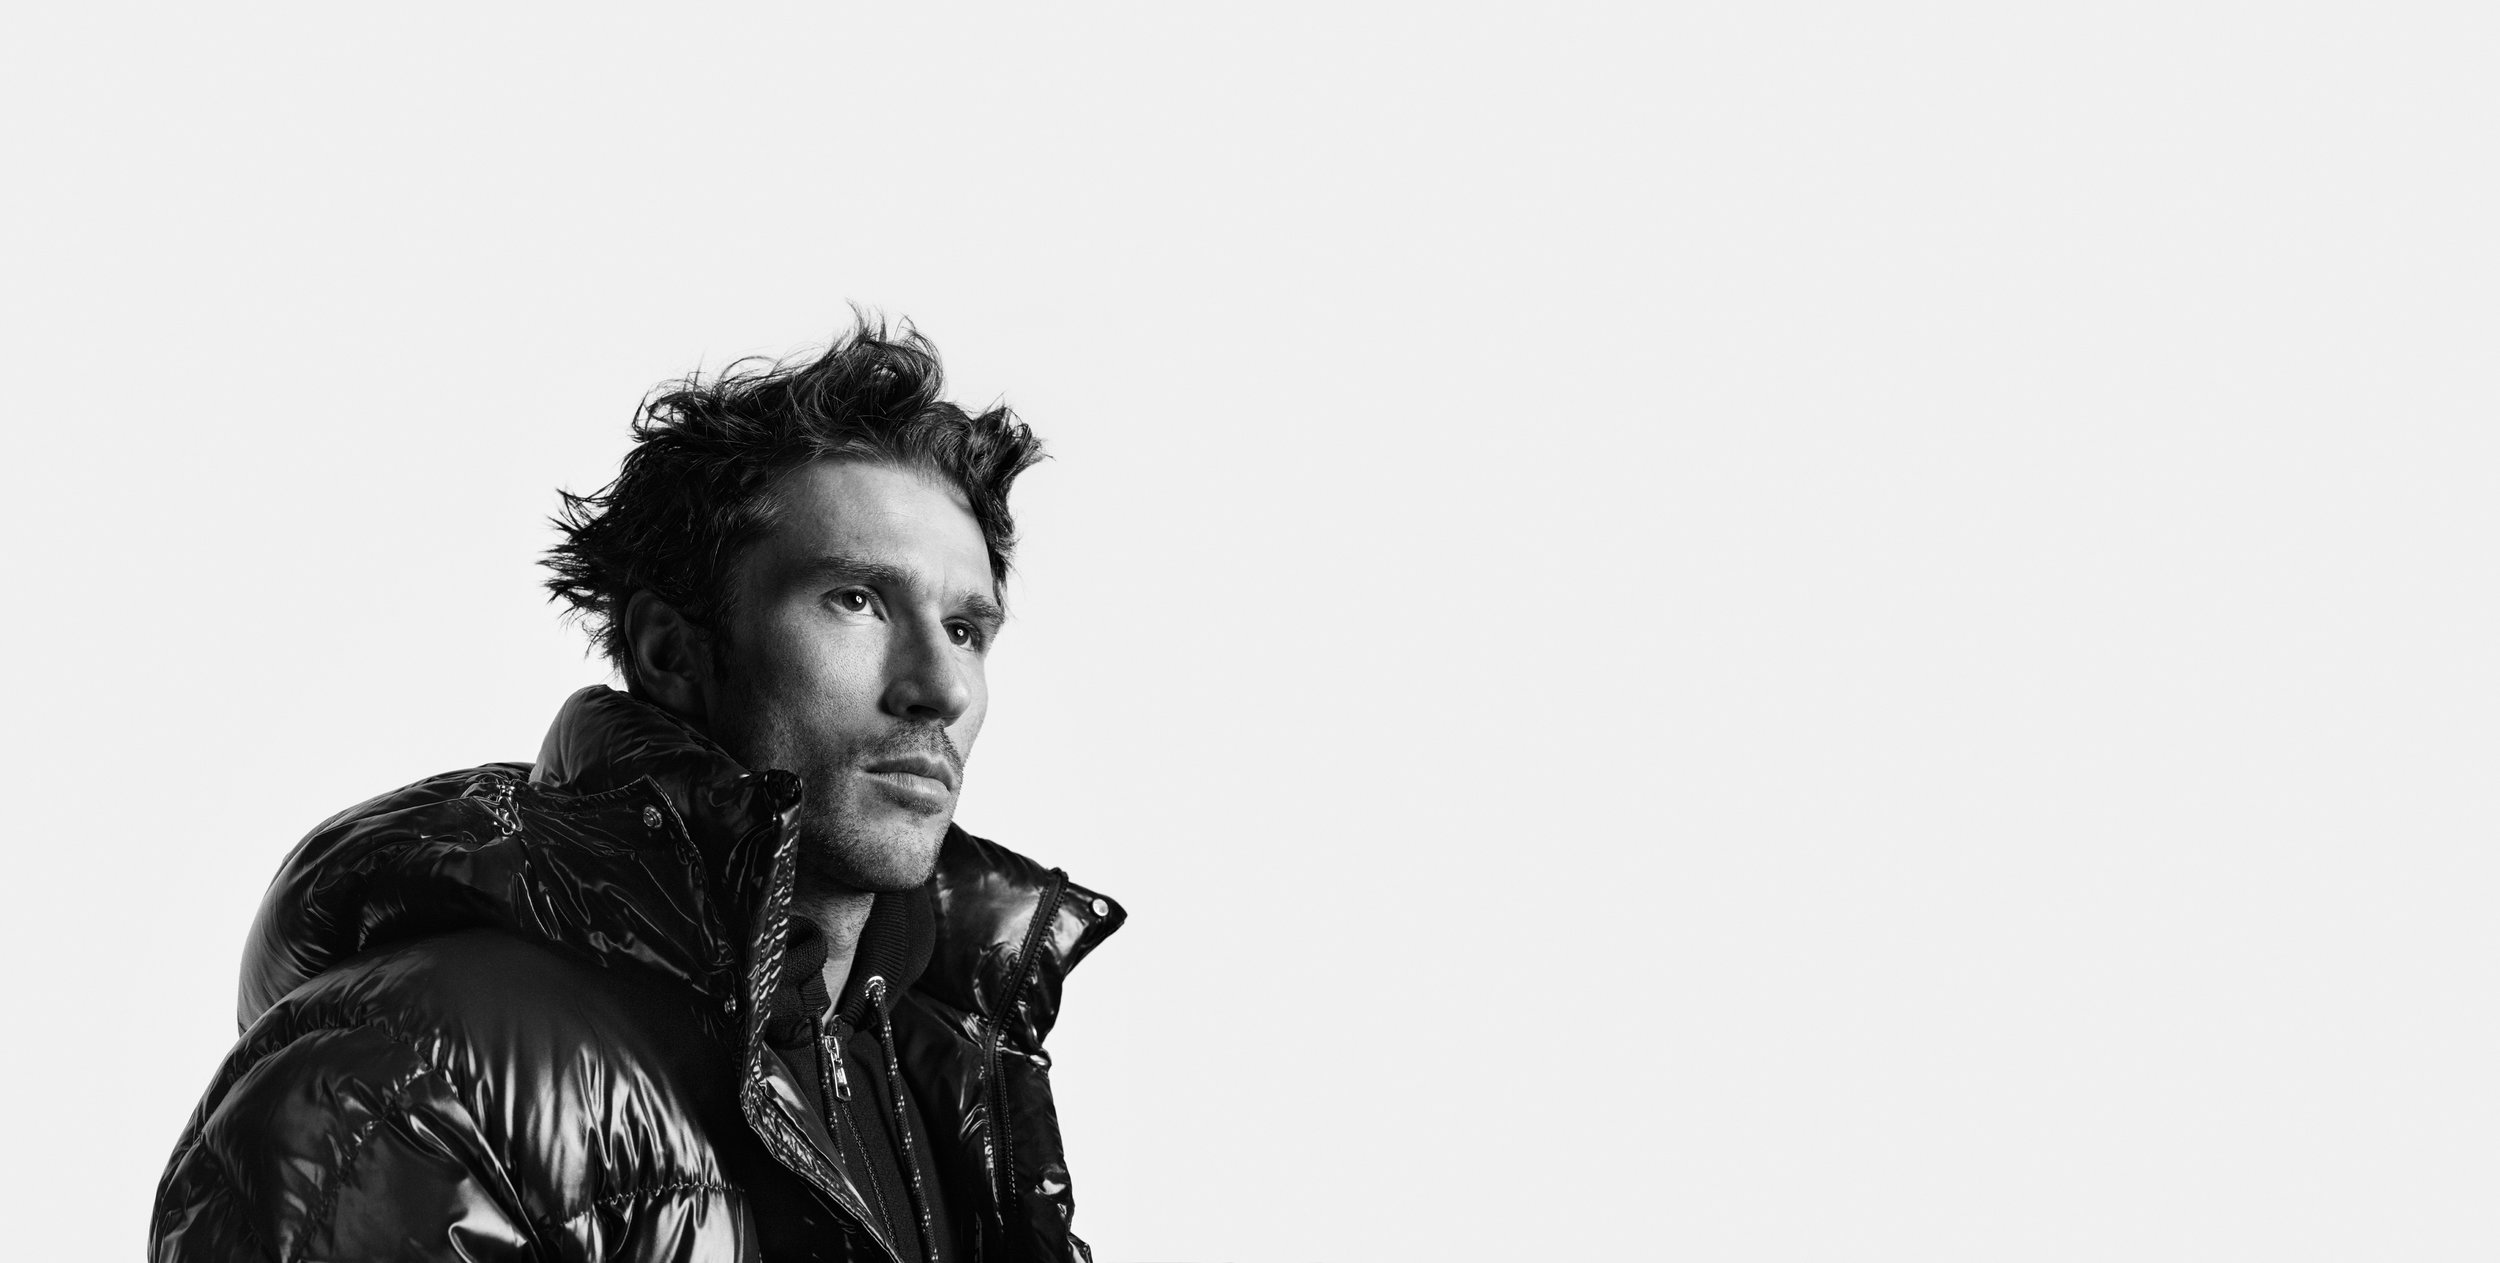 MONCLER BEYOND ADV CAMPAIGN FW 18-19_GUILLAUME NERY.jpg